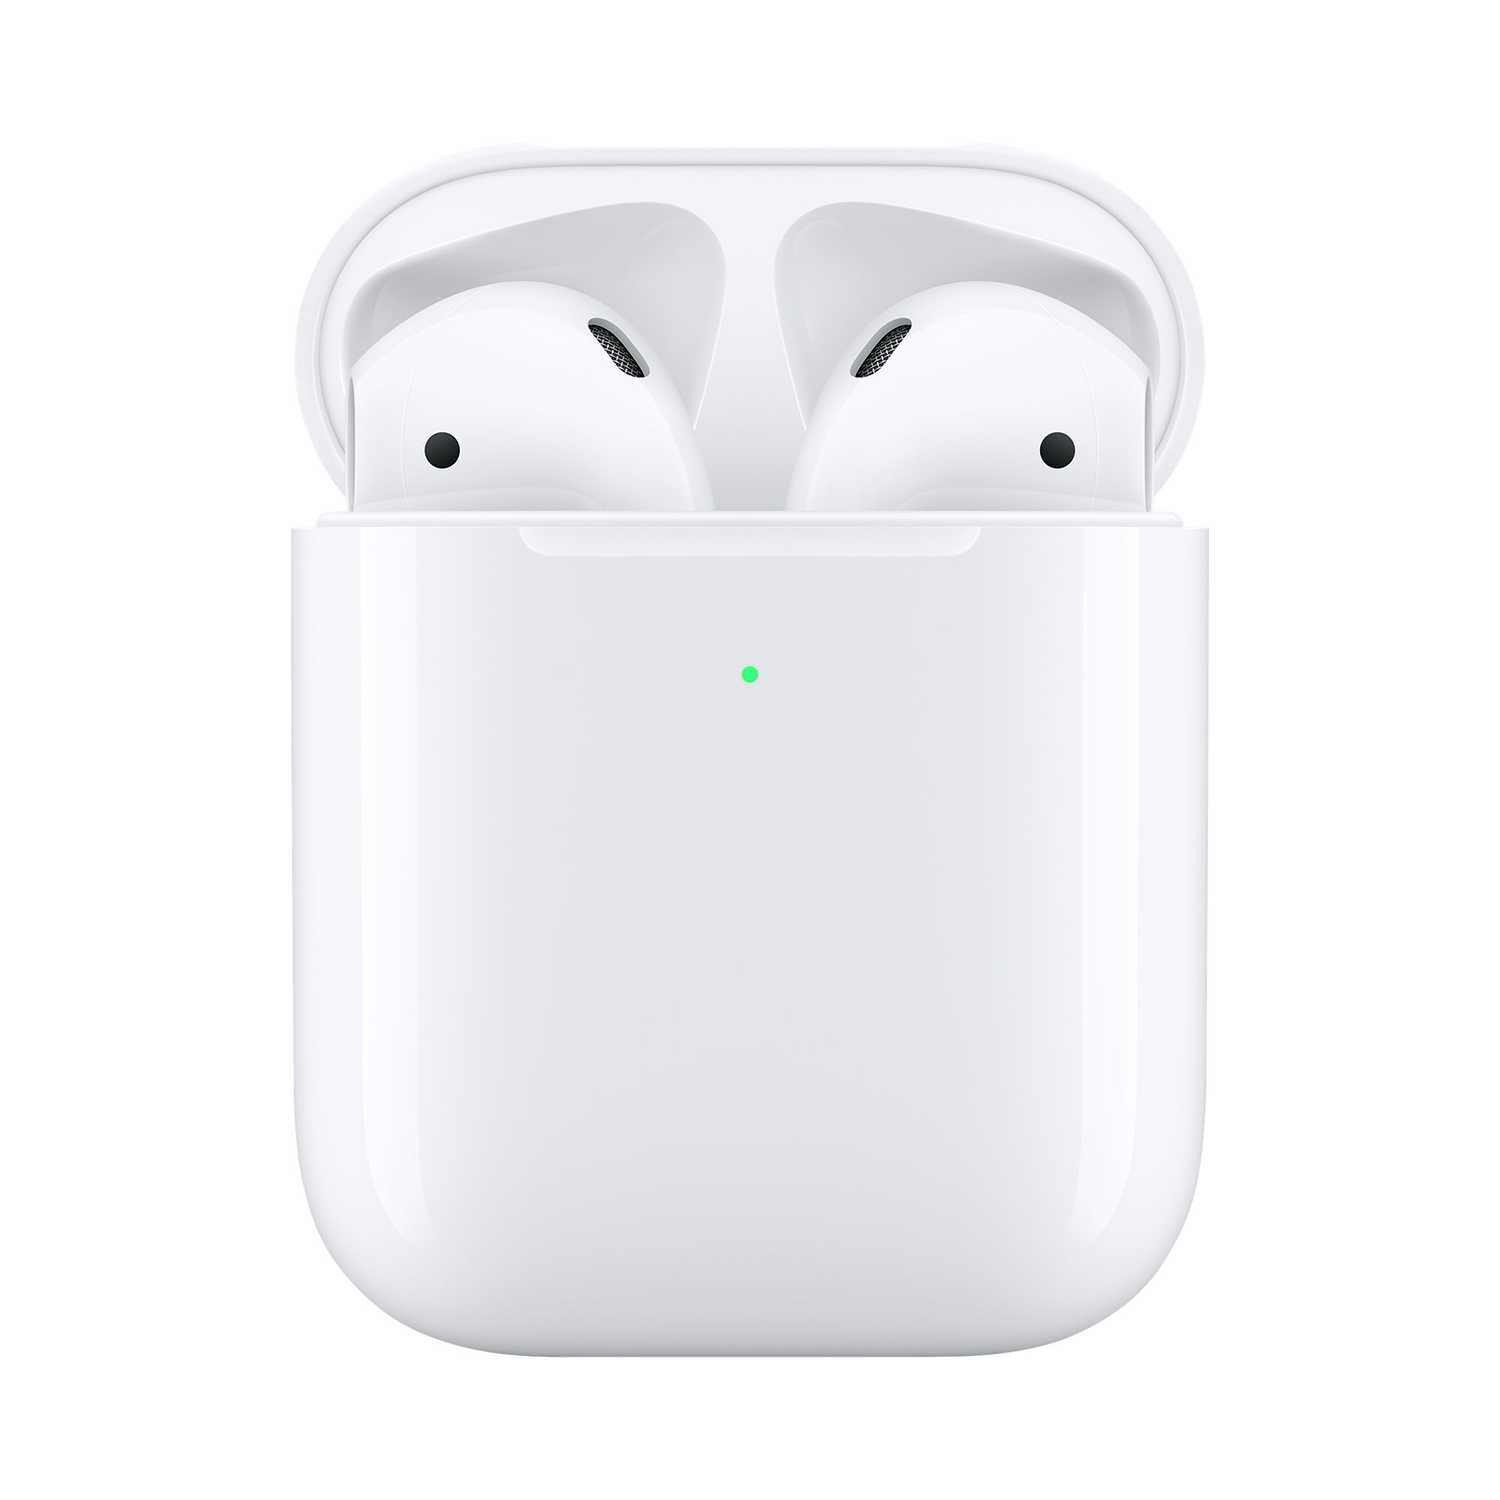 Phone headsets Apple AirPods With Wireless Charging Case Ref MRXJ2ZM/A